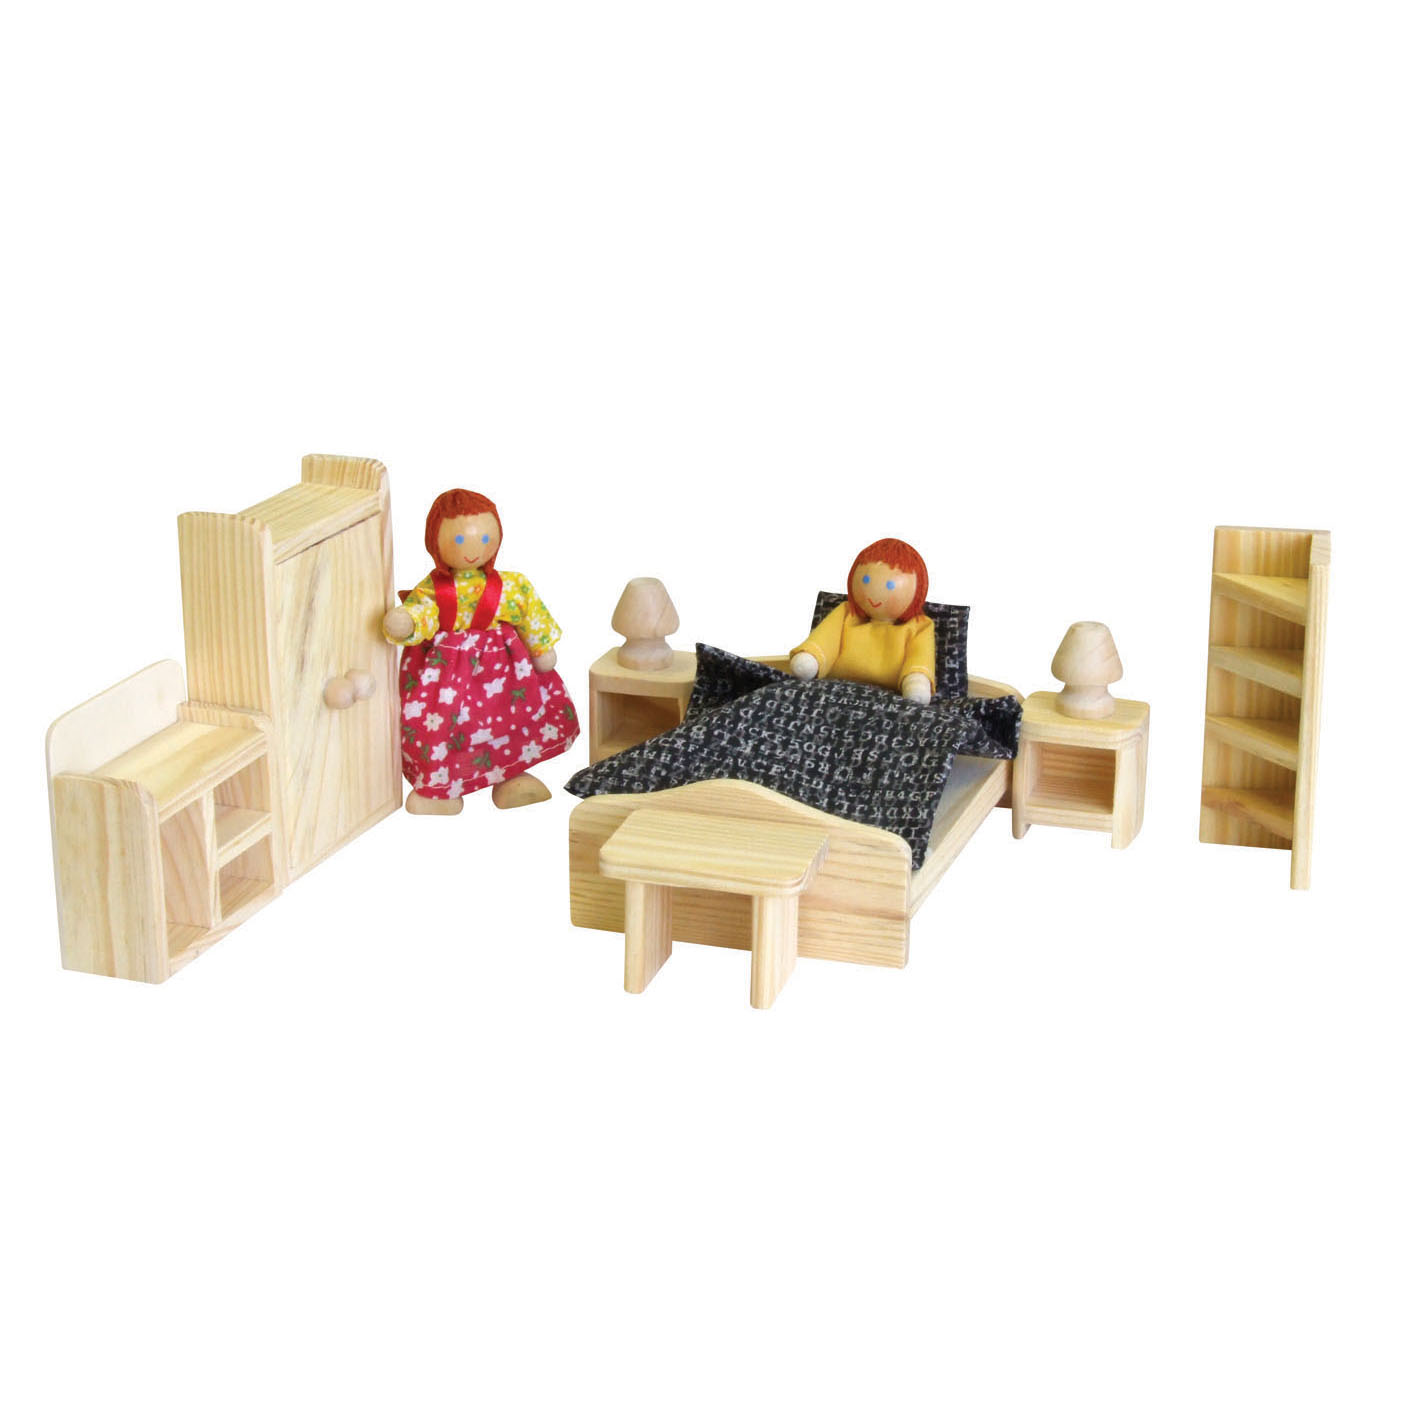 Wooden Doll House Double Bedroom furniture setting by Timbertop Toys